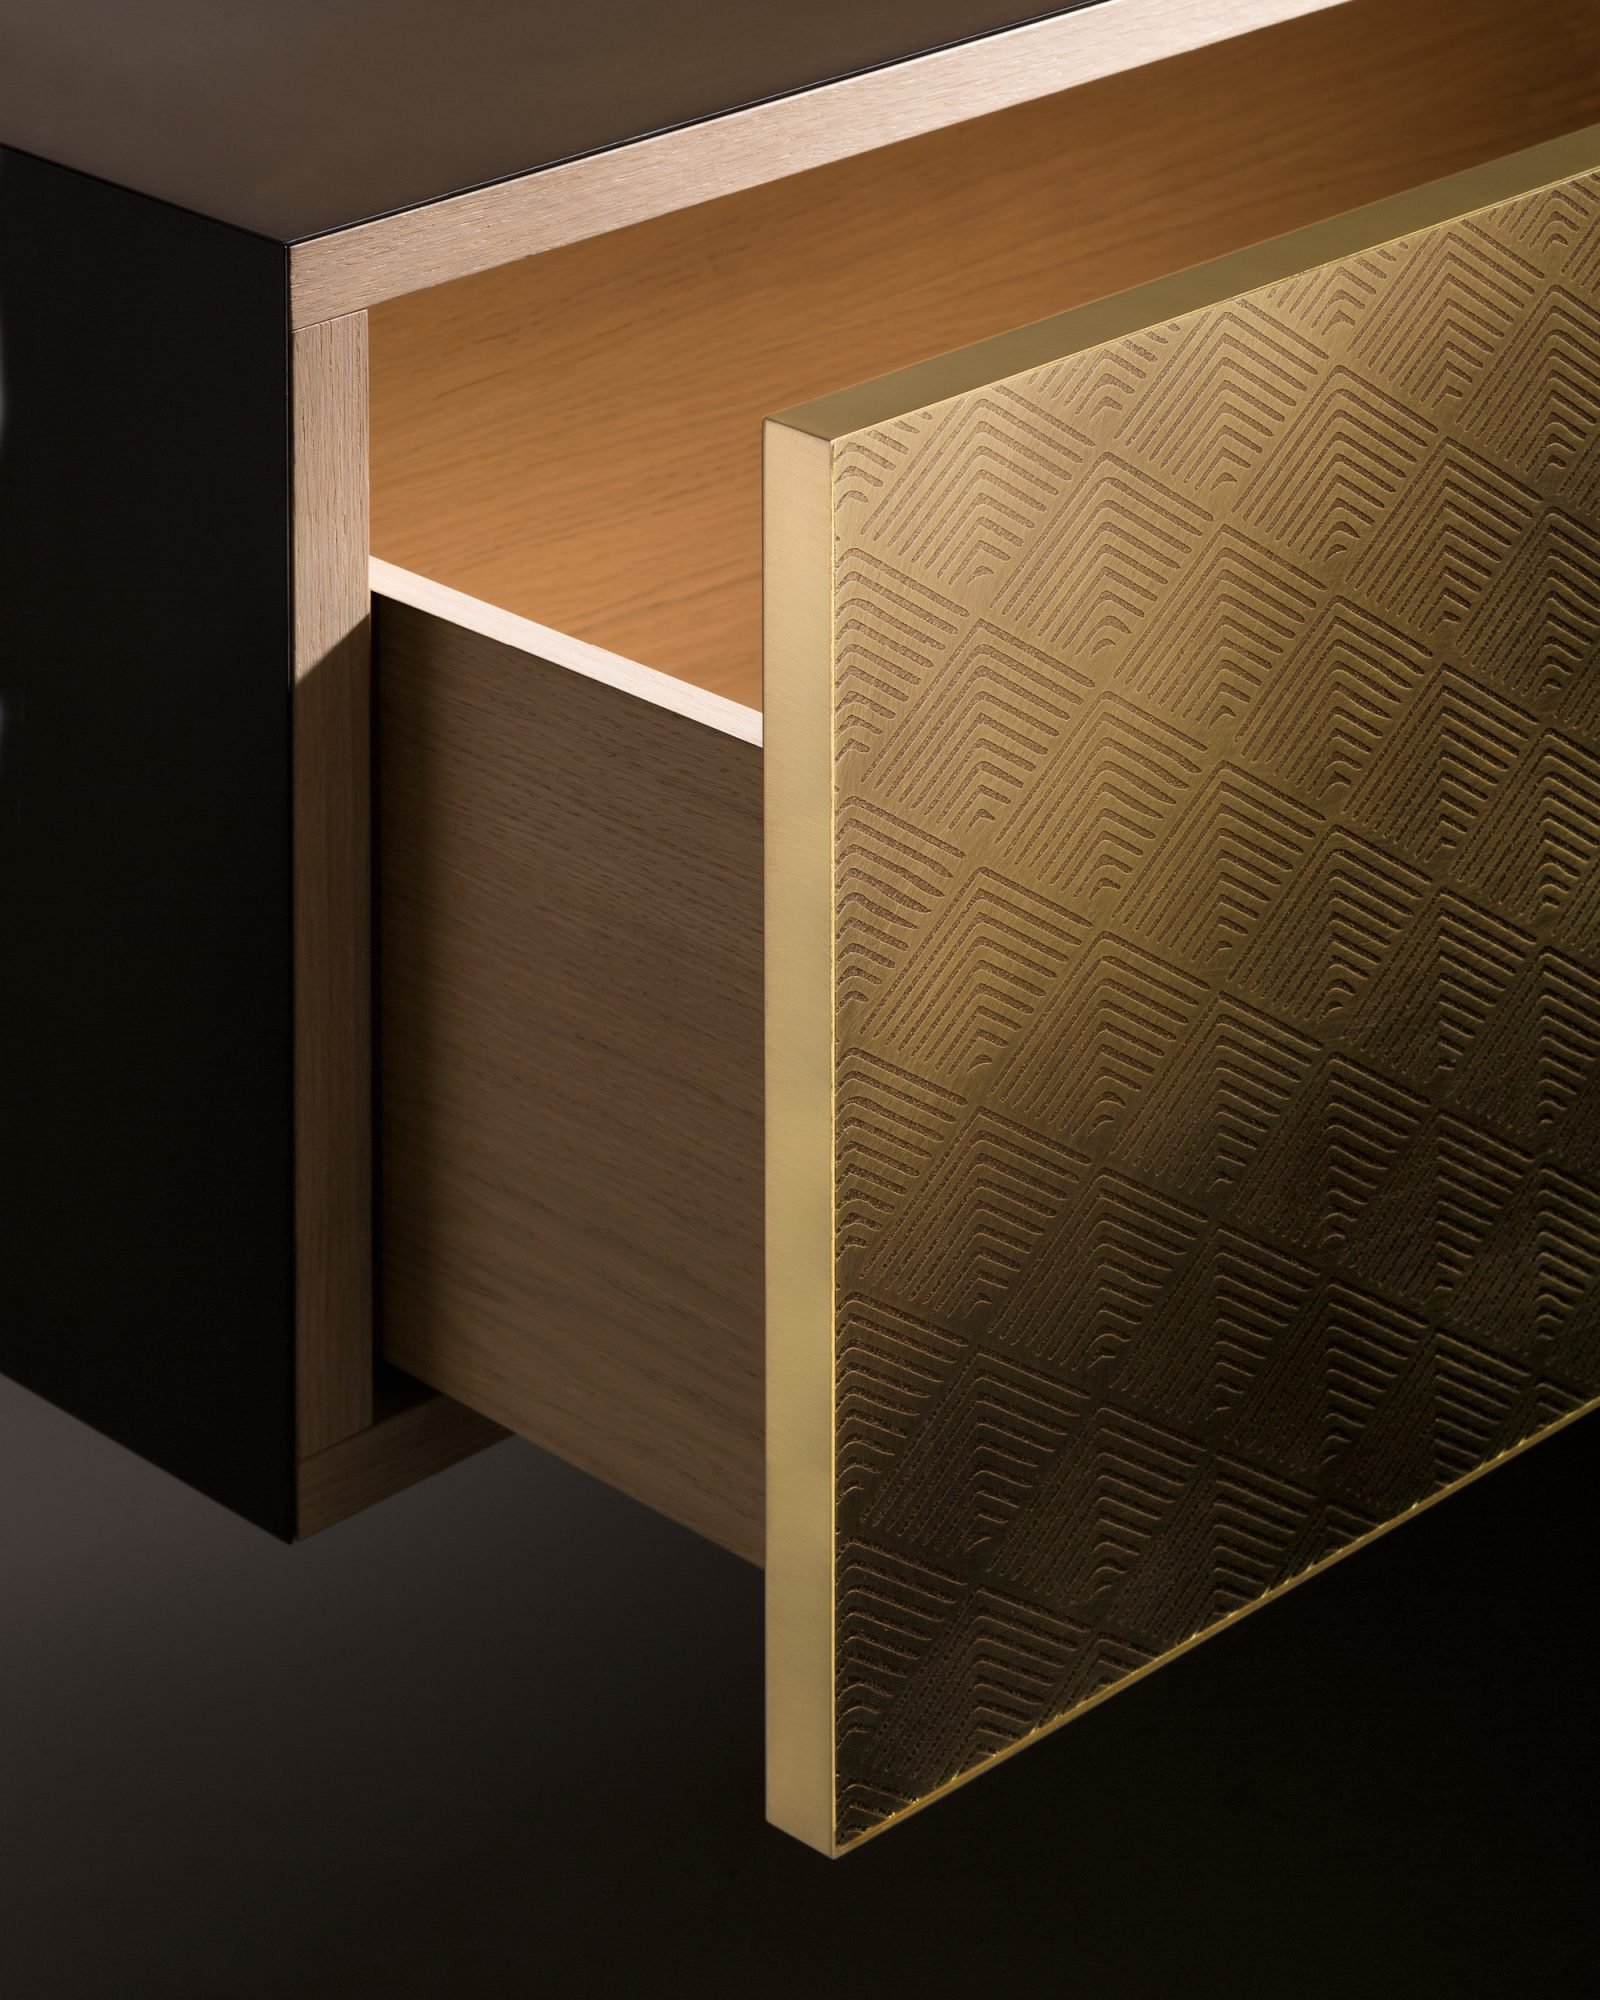 Tako Cabinets from De Castelli, designed by Filippo Pisan